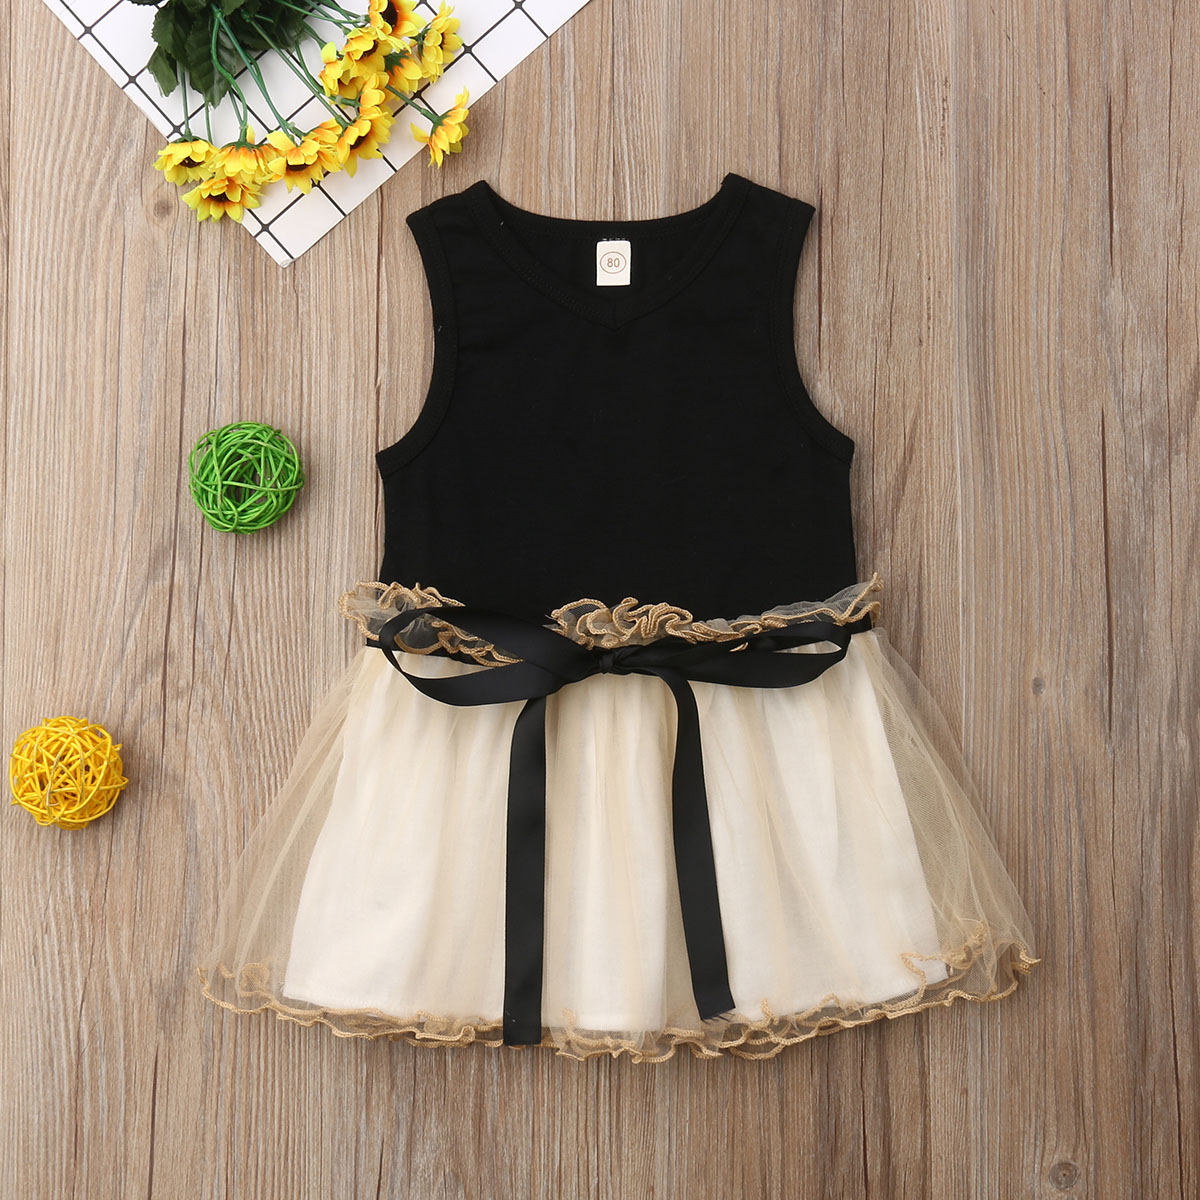 Toddler Baby Girl Clothes Sleeveless Bowknot Tutu Tulle Dress Princess Party Pageant SundressToddler Baby Girl Clothes Sleeveless Bowknot Tutu Tulle Dress Princess Party Pageant Sundress